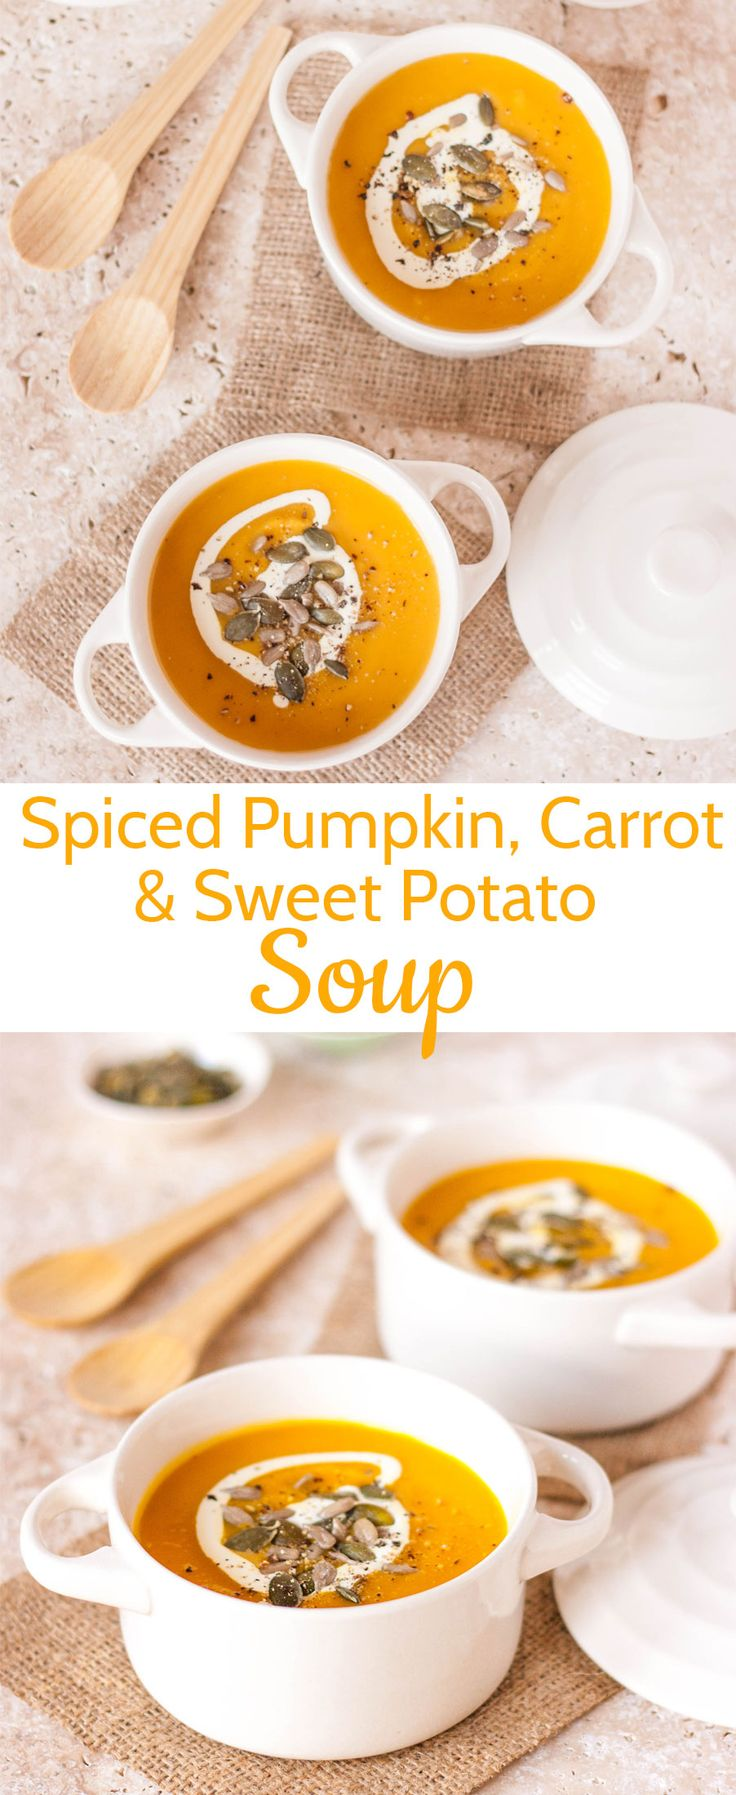 Spiced pumpkin, carrot, and sweet potato soup is a delicious twist on the classic sweet potato soup recipe. It's the perfect sweet potato recipe for Thanksgiving!